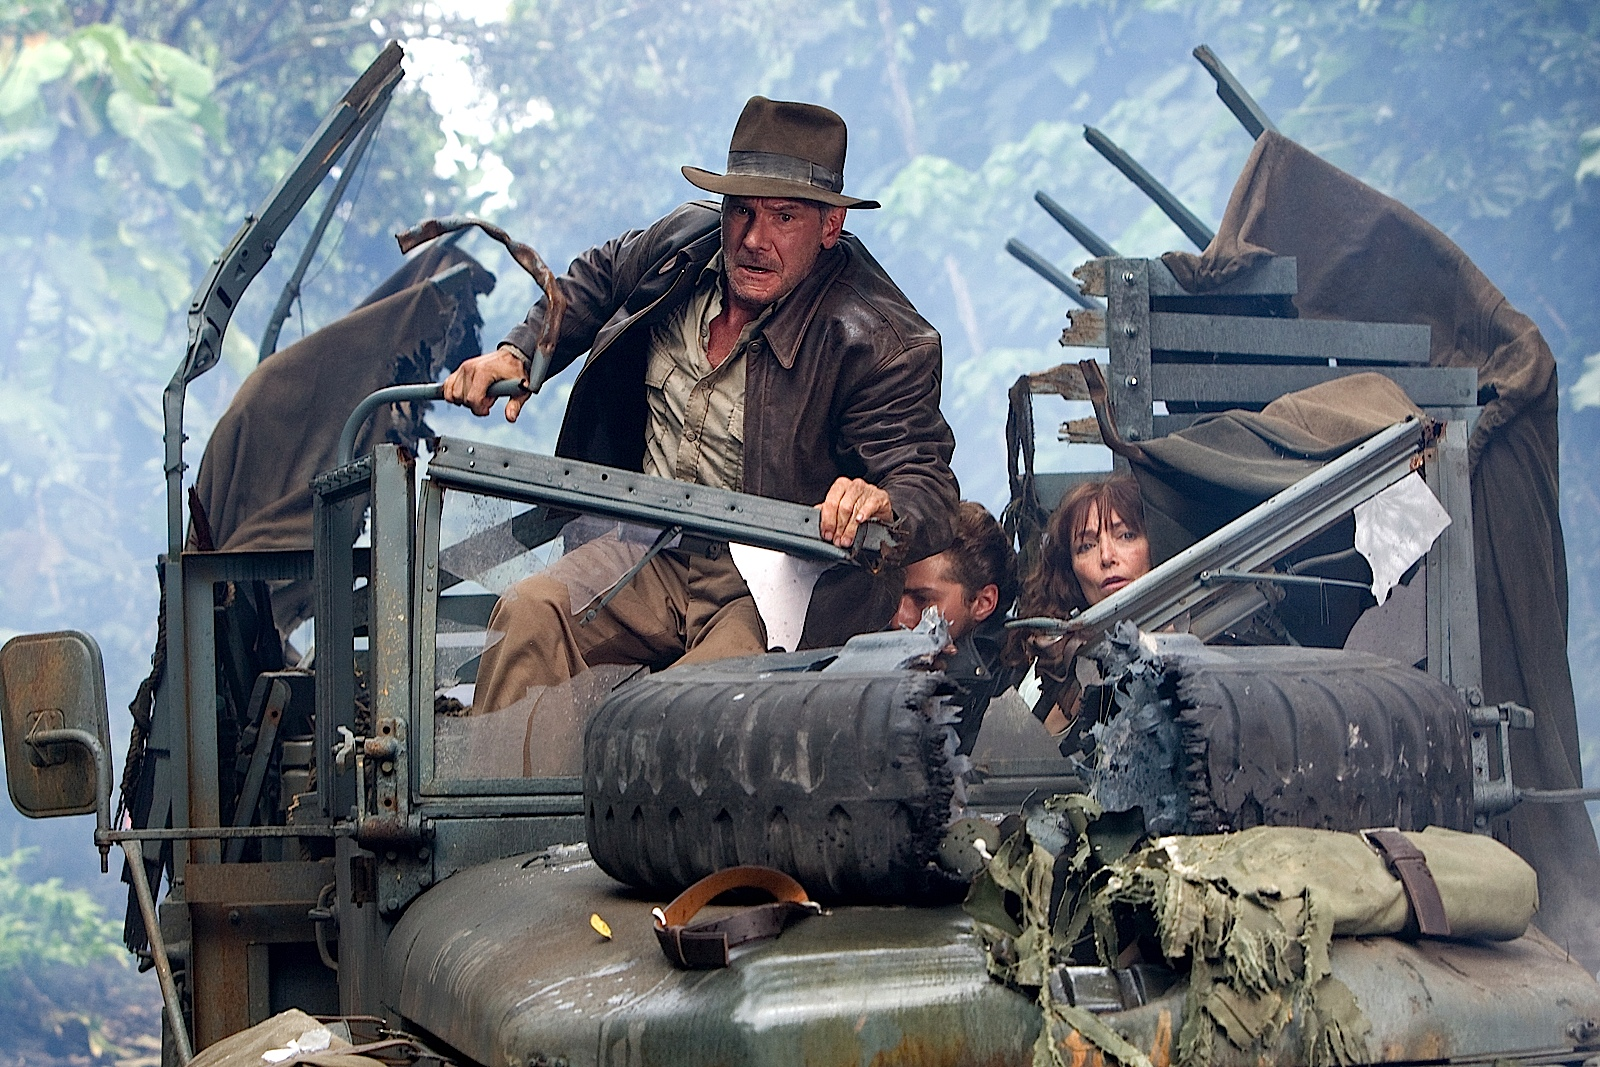 'Lengua, Cámara y Acción': Will Indiana Jones Succeed Under Disney?